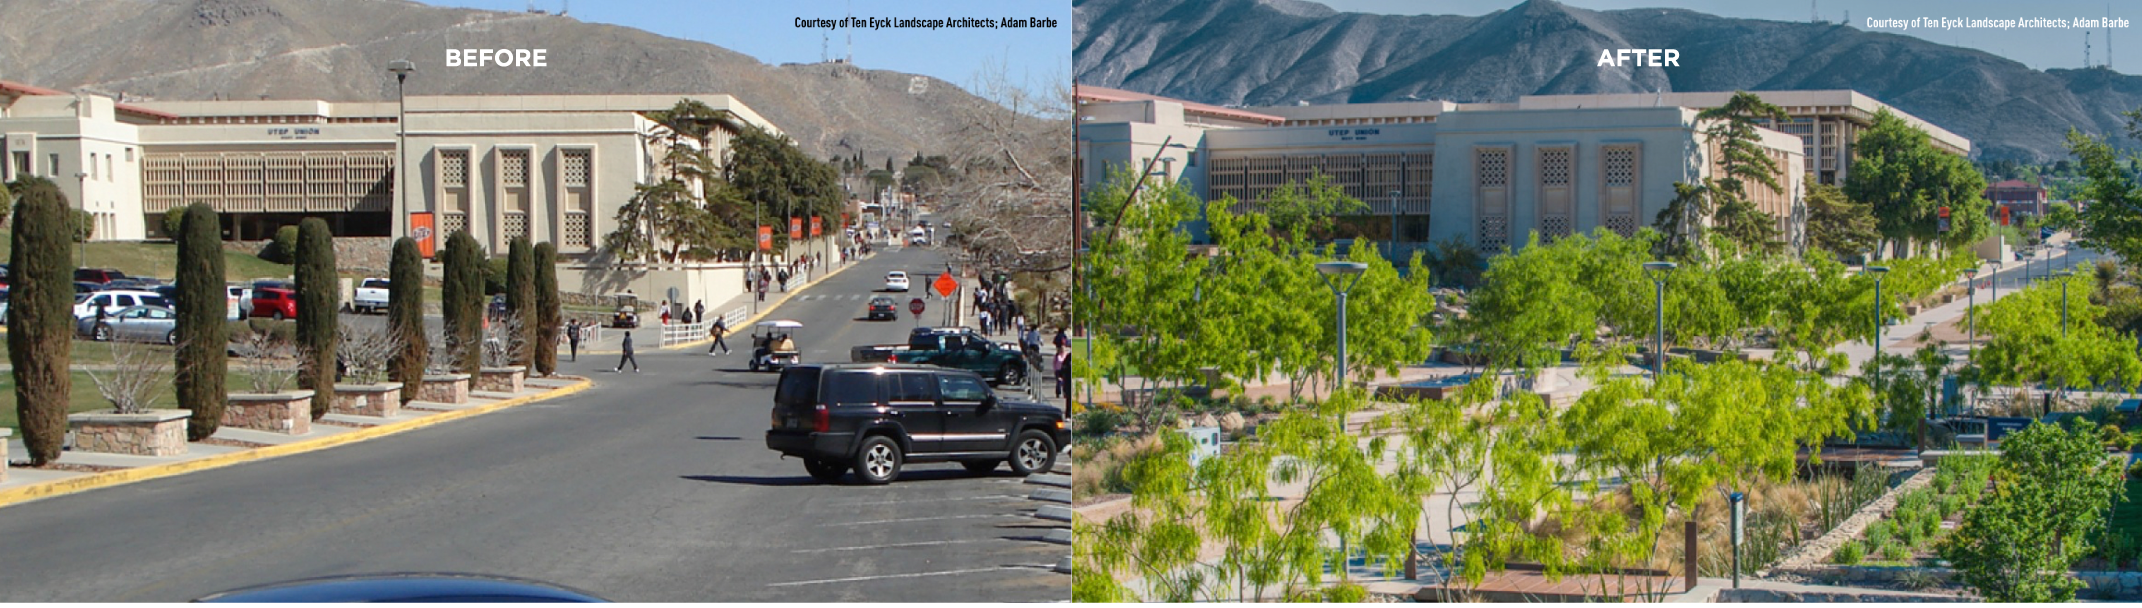 University of Texas at El Paso SITES project